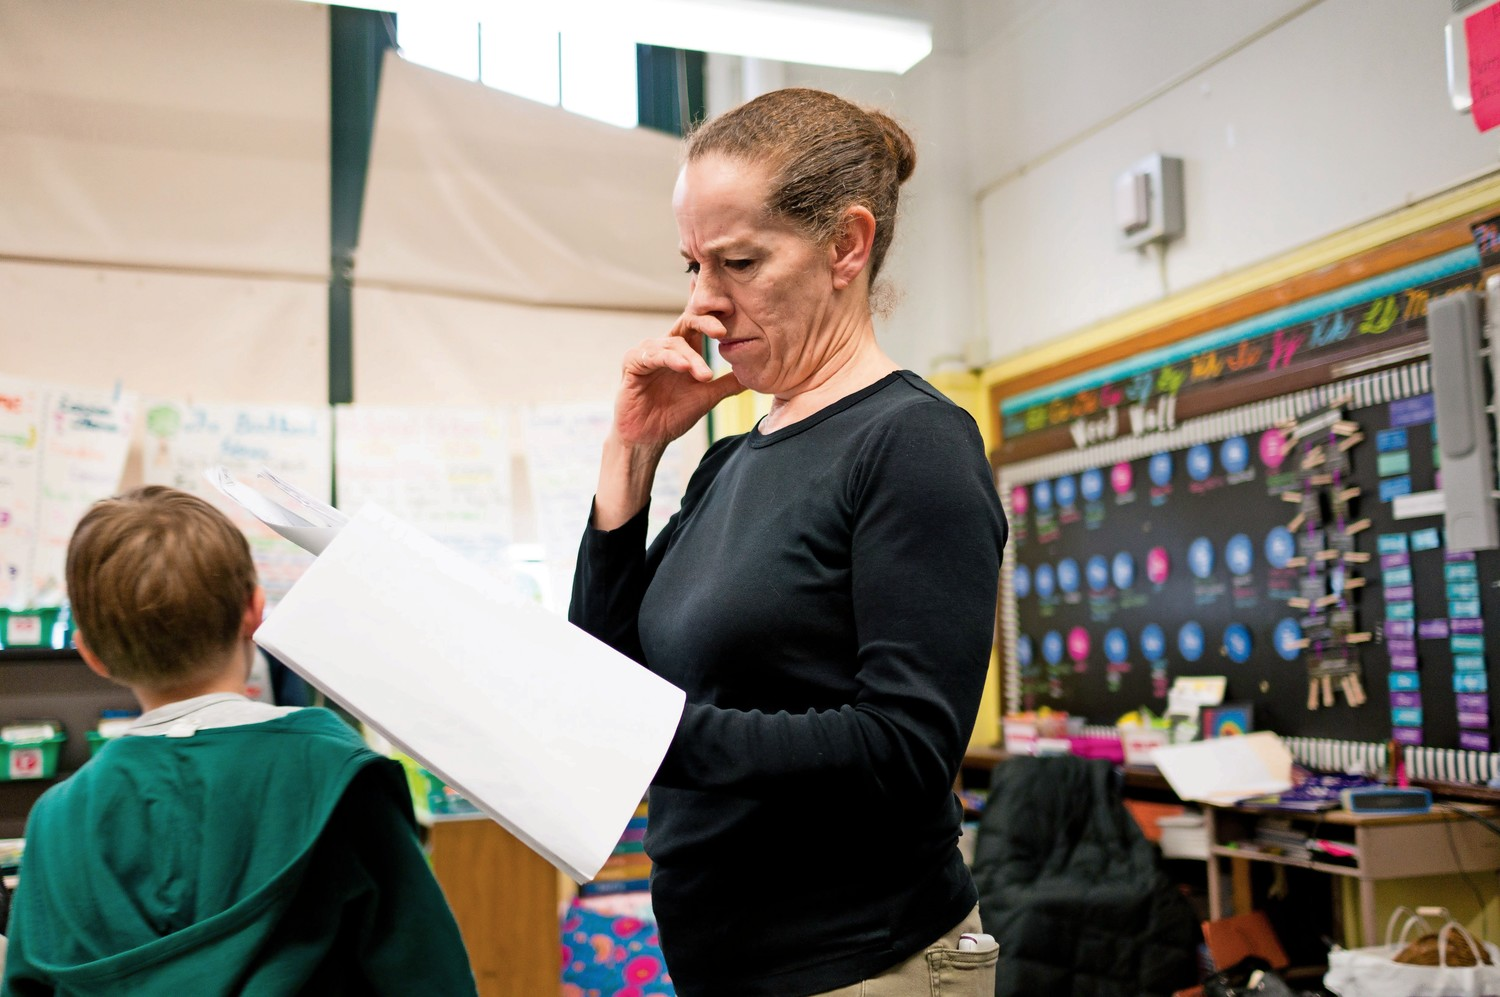 Kim Johnson, an artist in residence at P.S. 81, looks over the script for a play about early American history. All of P.S. 81's fourth grade classes participated in a play portraying early American history. The school has adopted a new social studies curriculum called 'Passport to Social Studies,' which encourages students to think like historians.